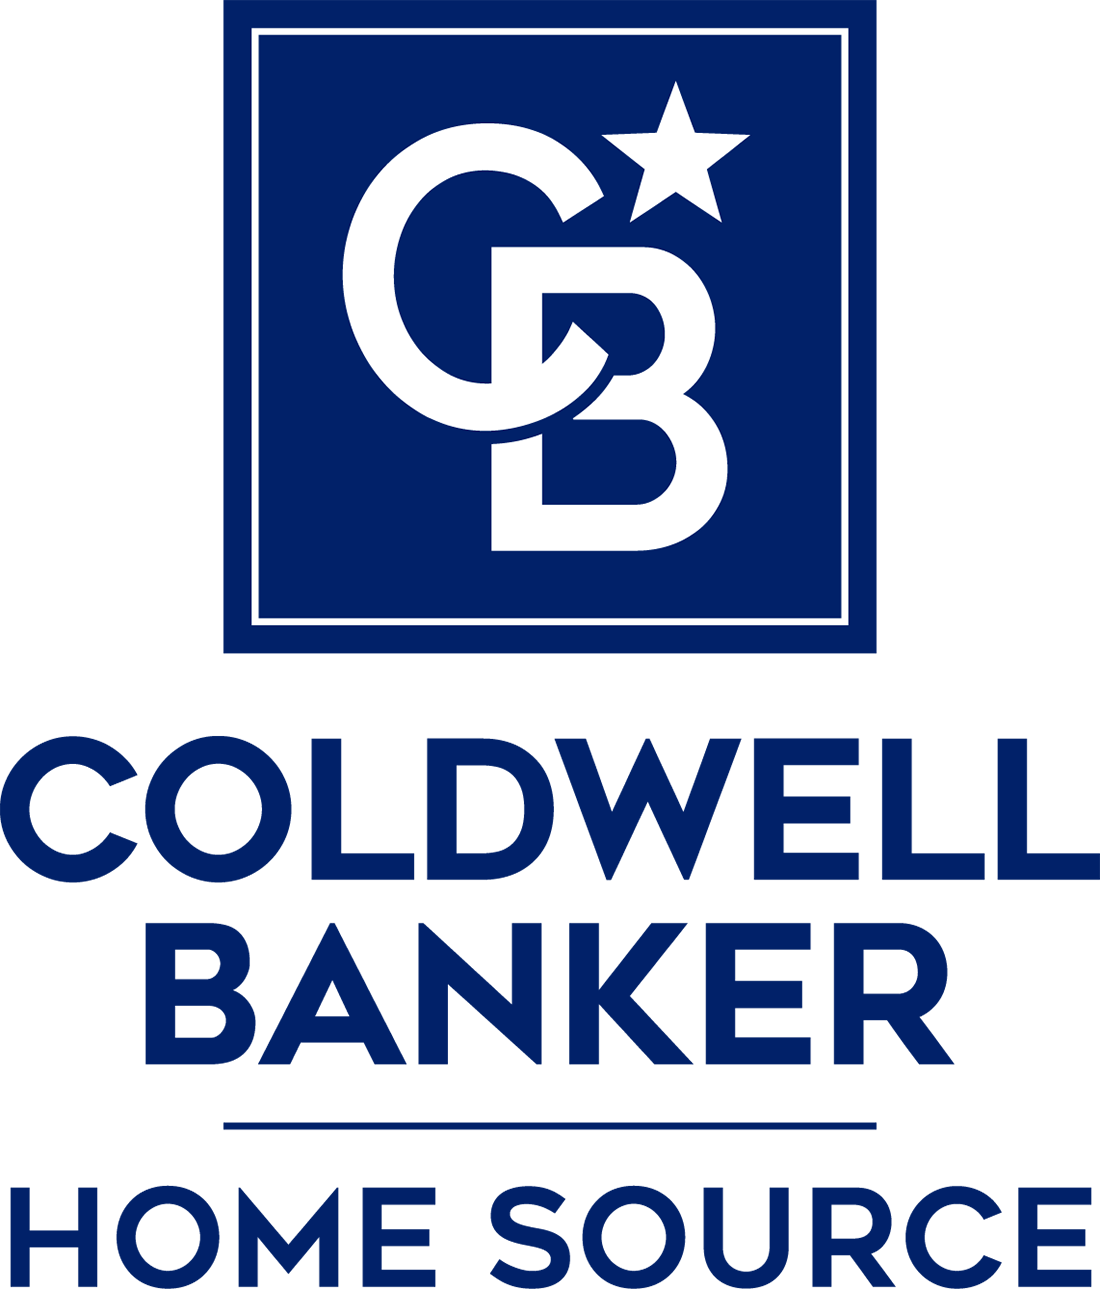 Debbie Canizales - Coldwell Banker Home Source Logo